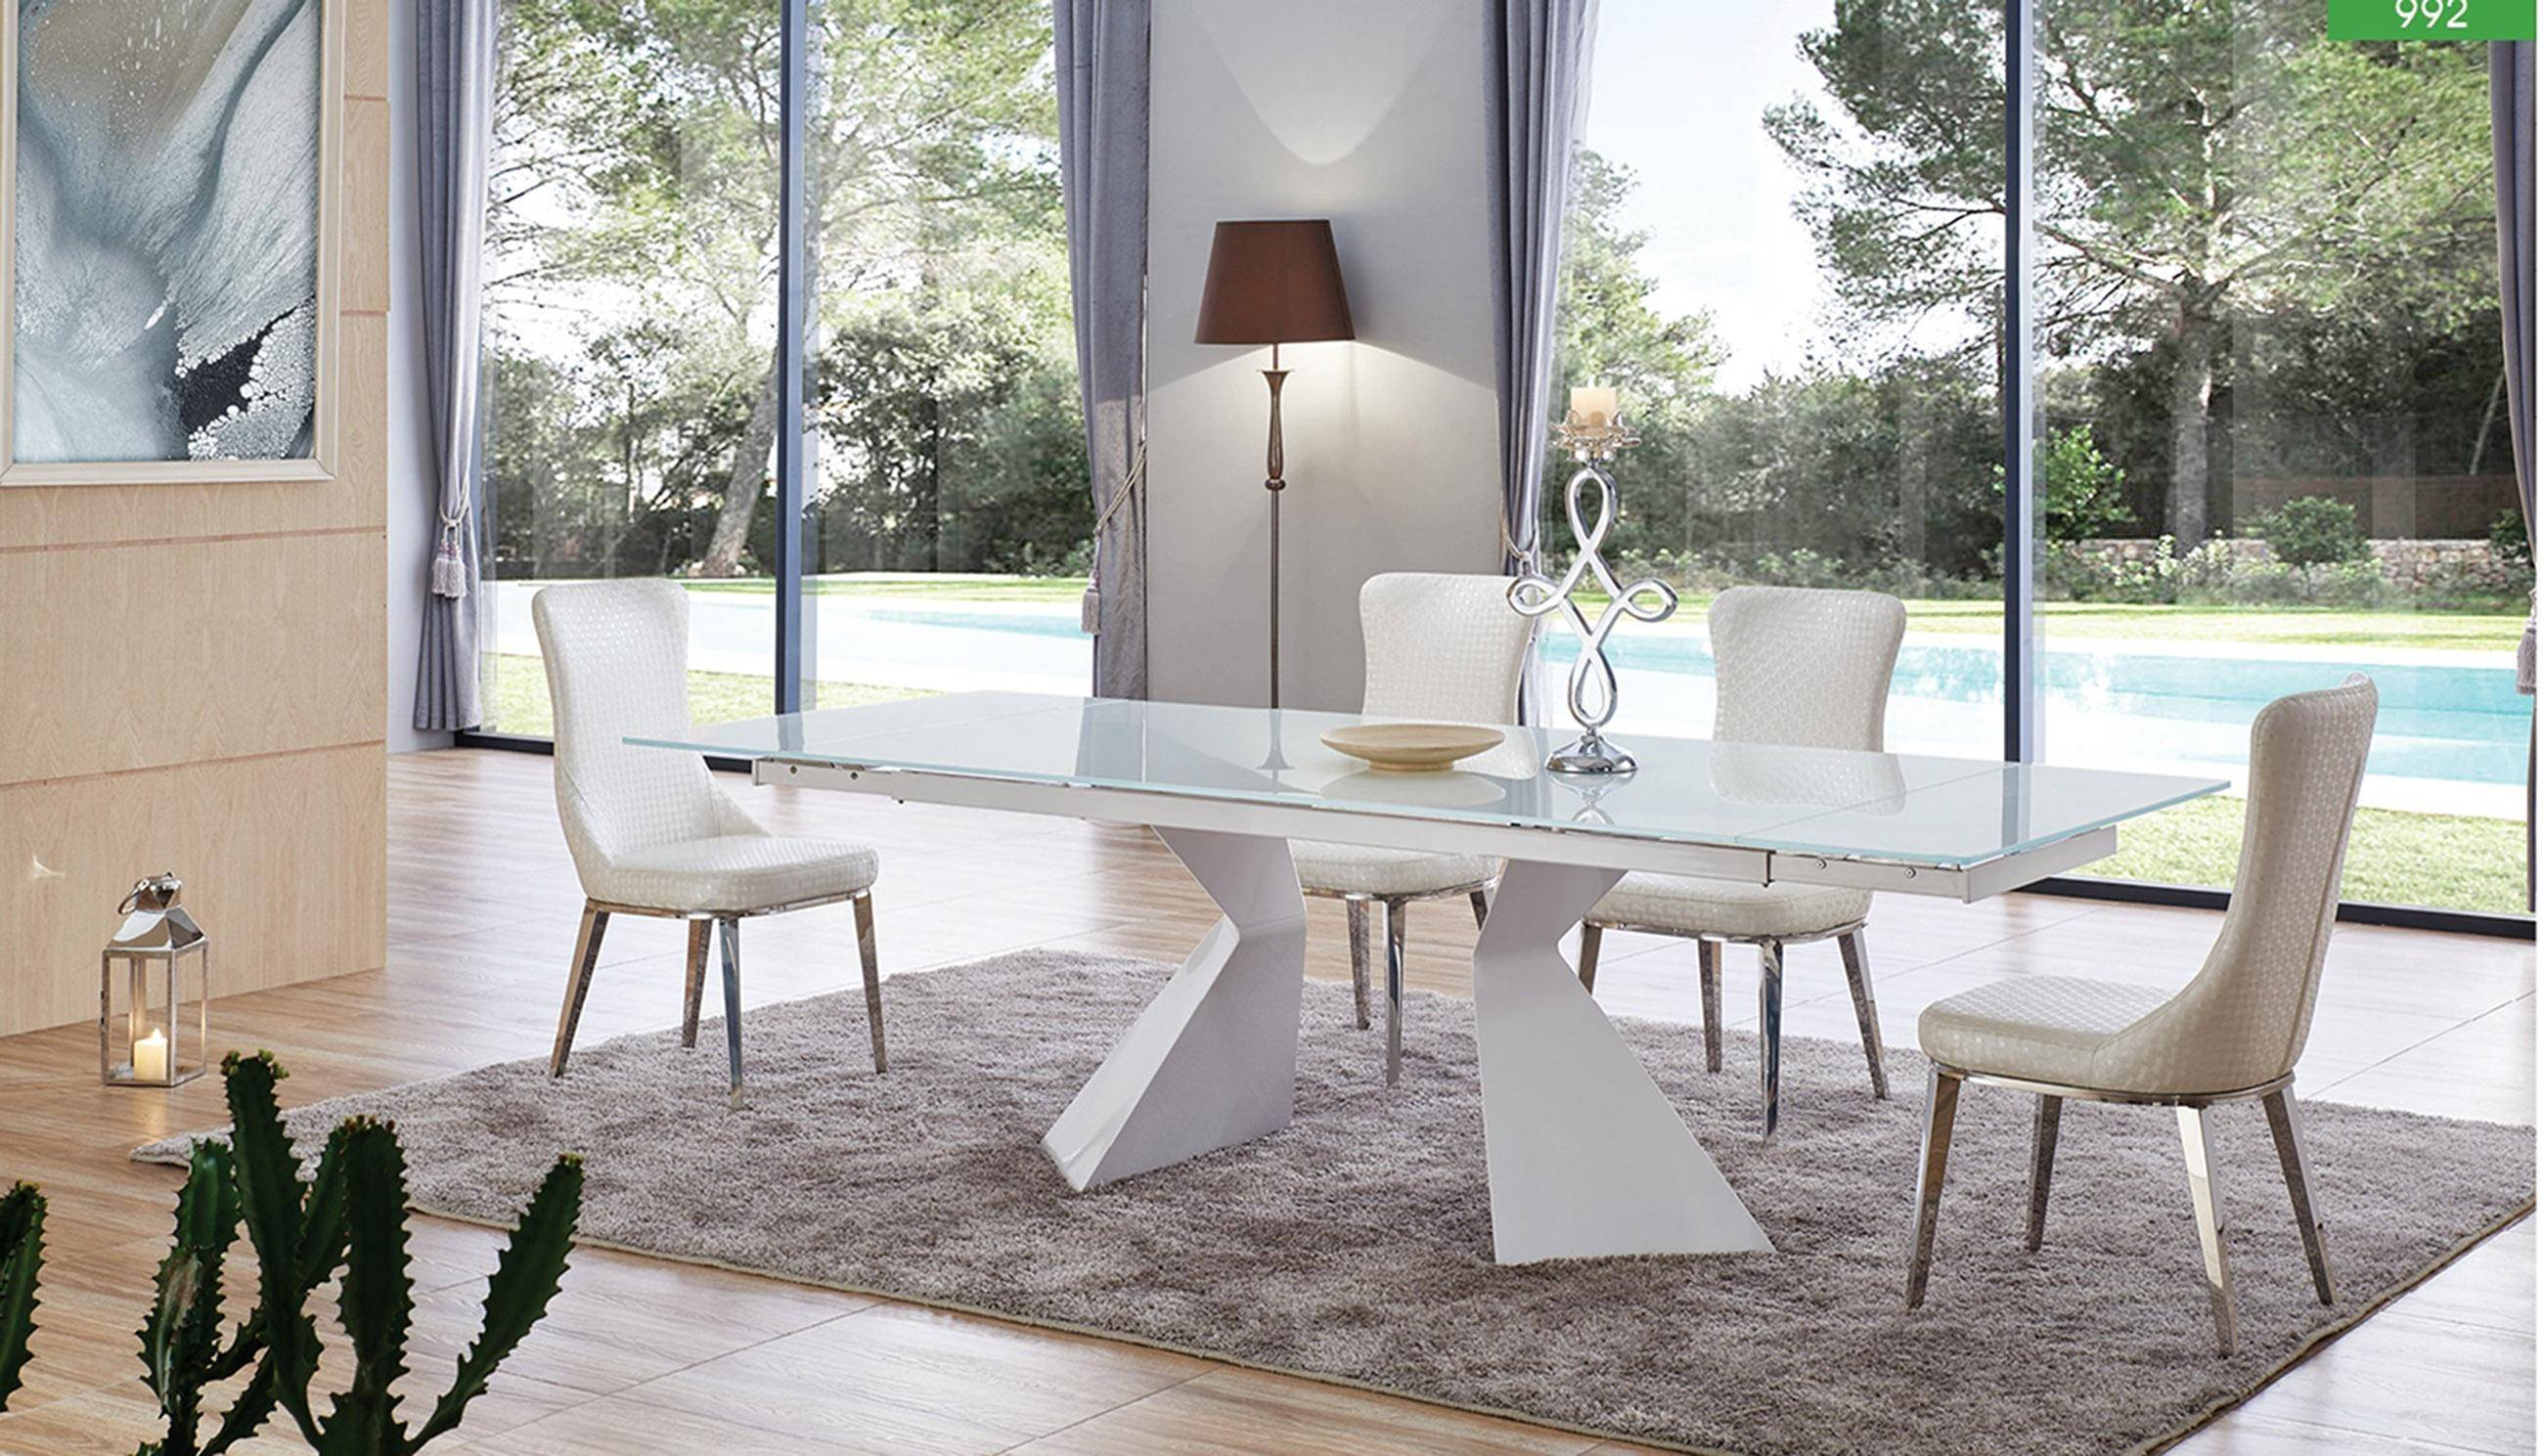 Buy Esf 992 Dining Sets 7 Pcs In White Eco Leather Online